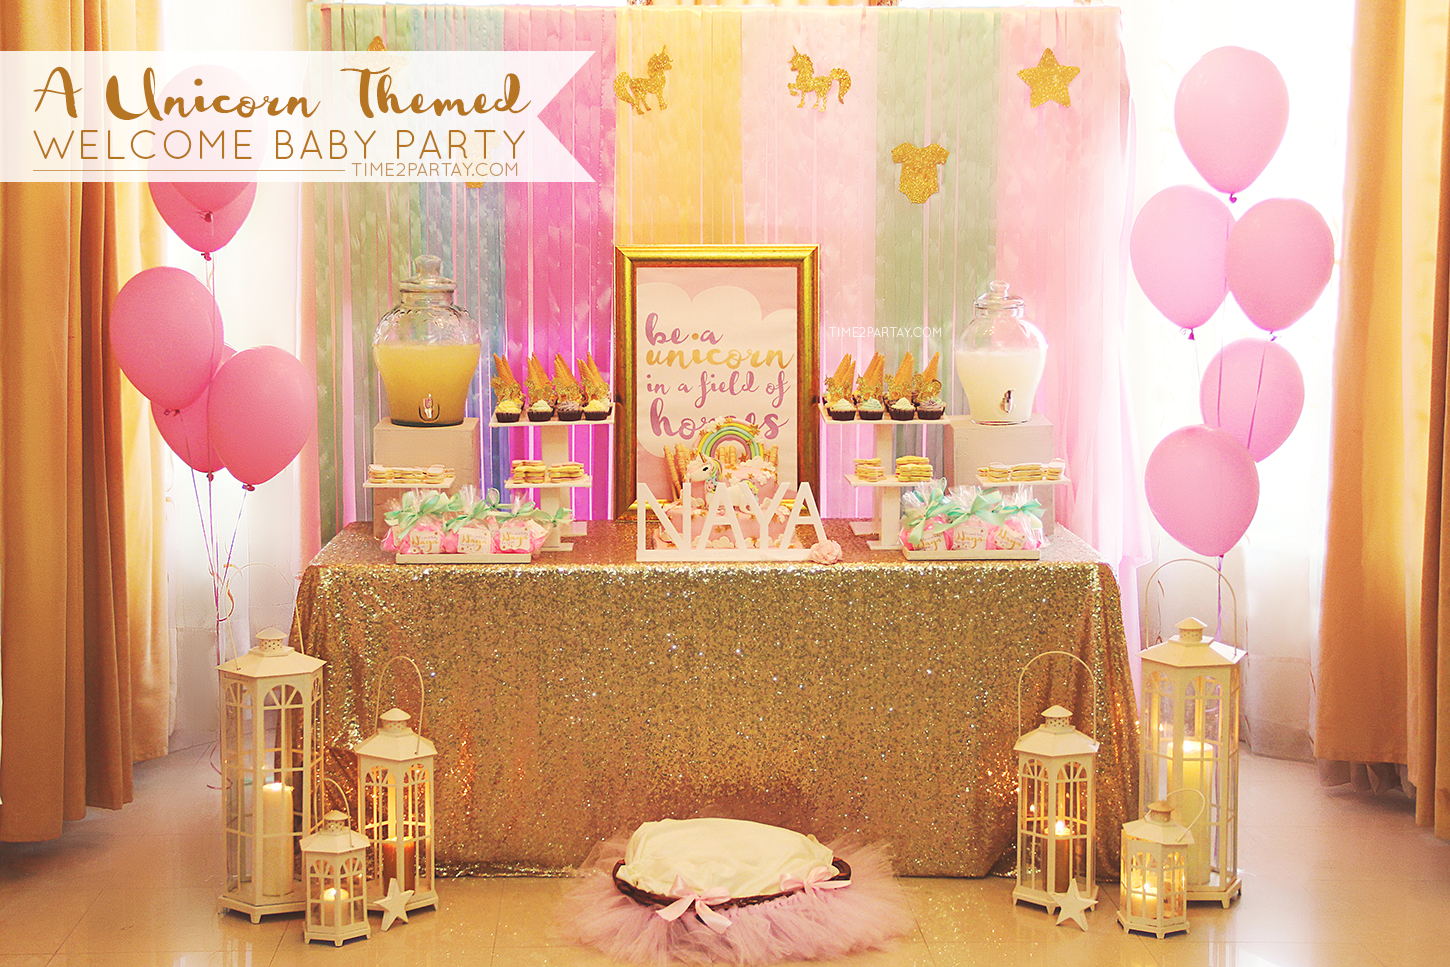 Babyzimmer inspiration ~ A unicorn themed welcome baby party time2partay.com unicorn